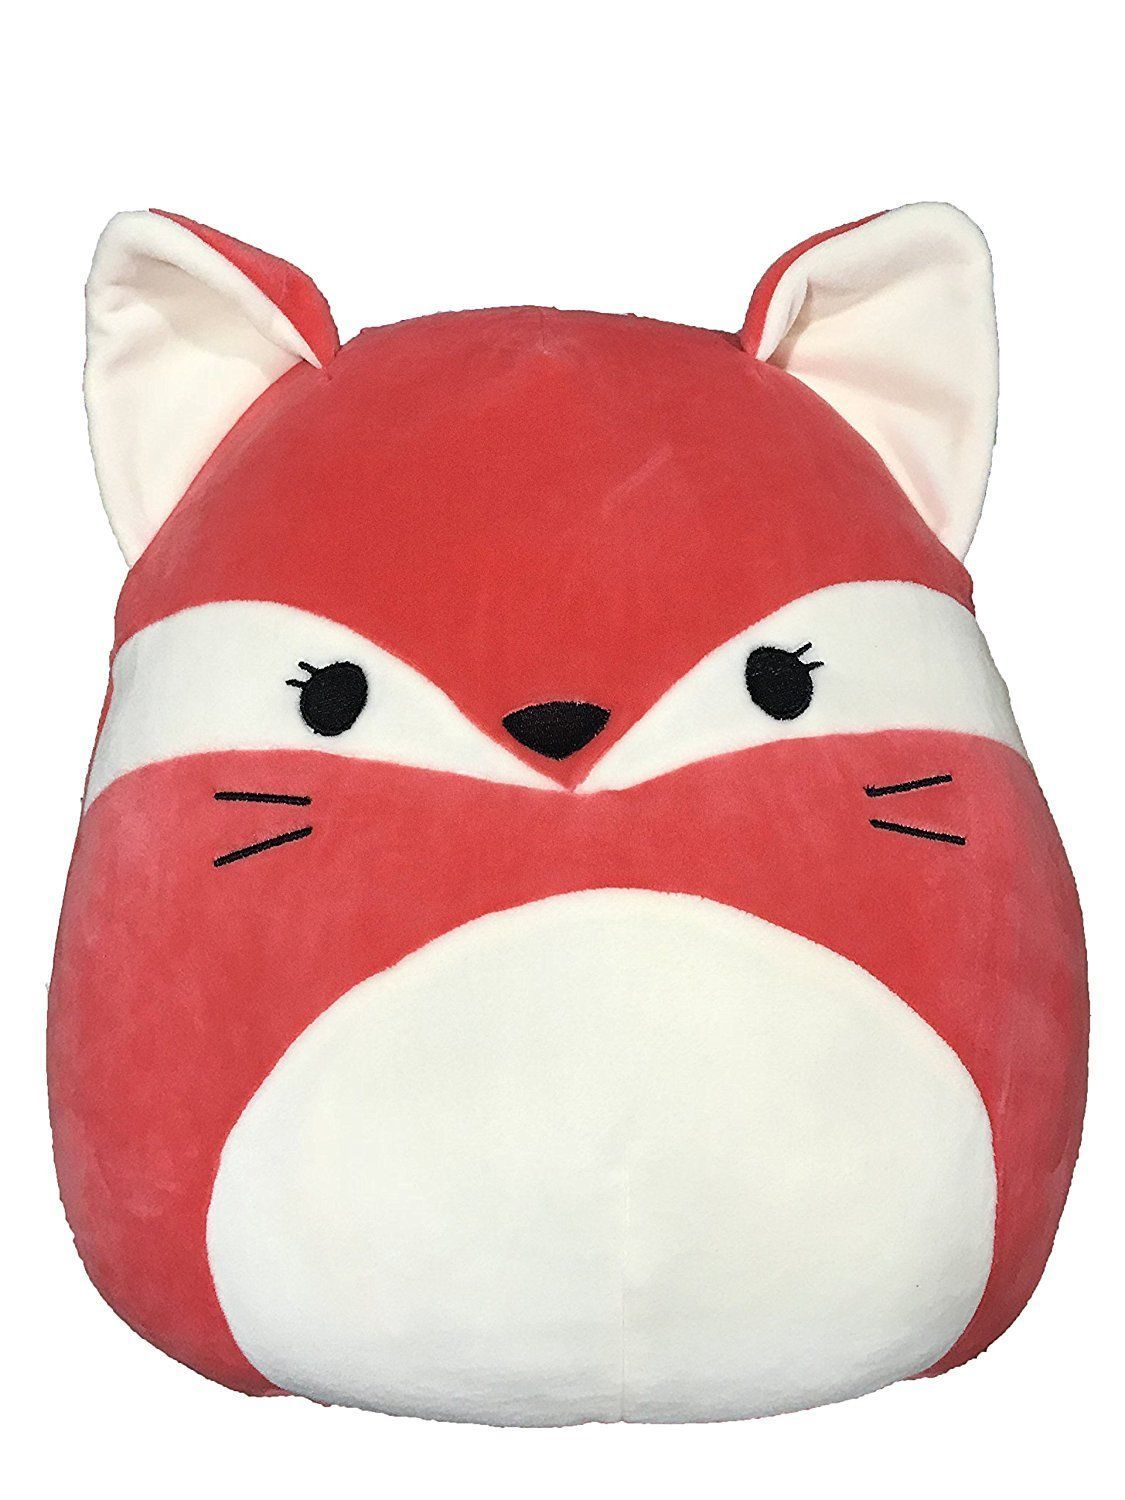 Mixed Lots 158780 Squishmallows 16 Super Soft Plush Toy Animal Pillow Pal Buddy The Fox Buy It Now Only 27 Fox Stuffed Animal Animal Pillows Pillow Pals